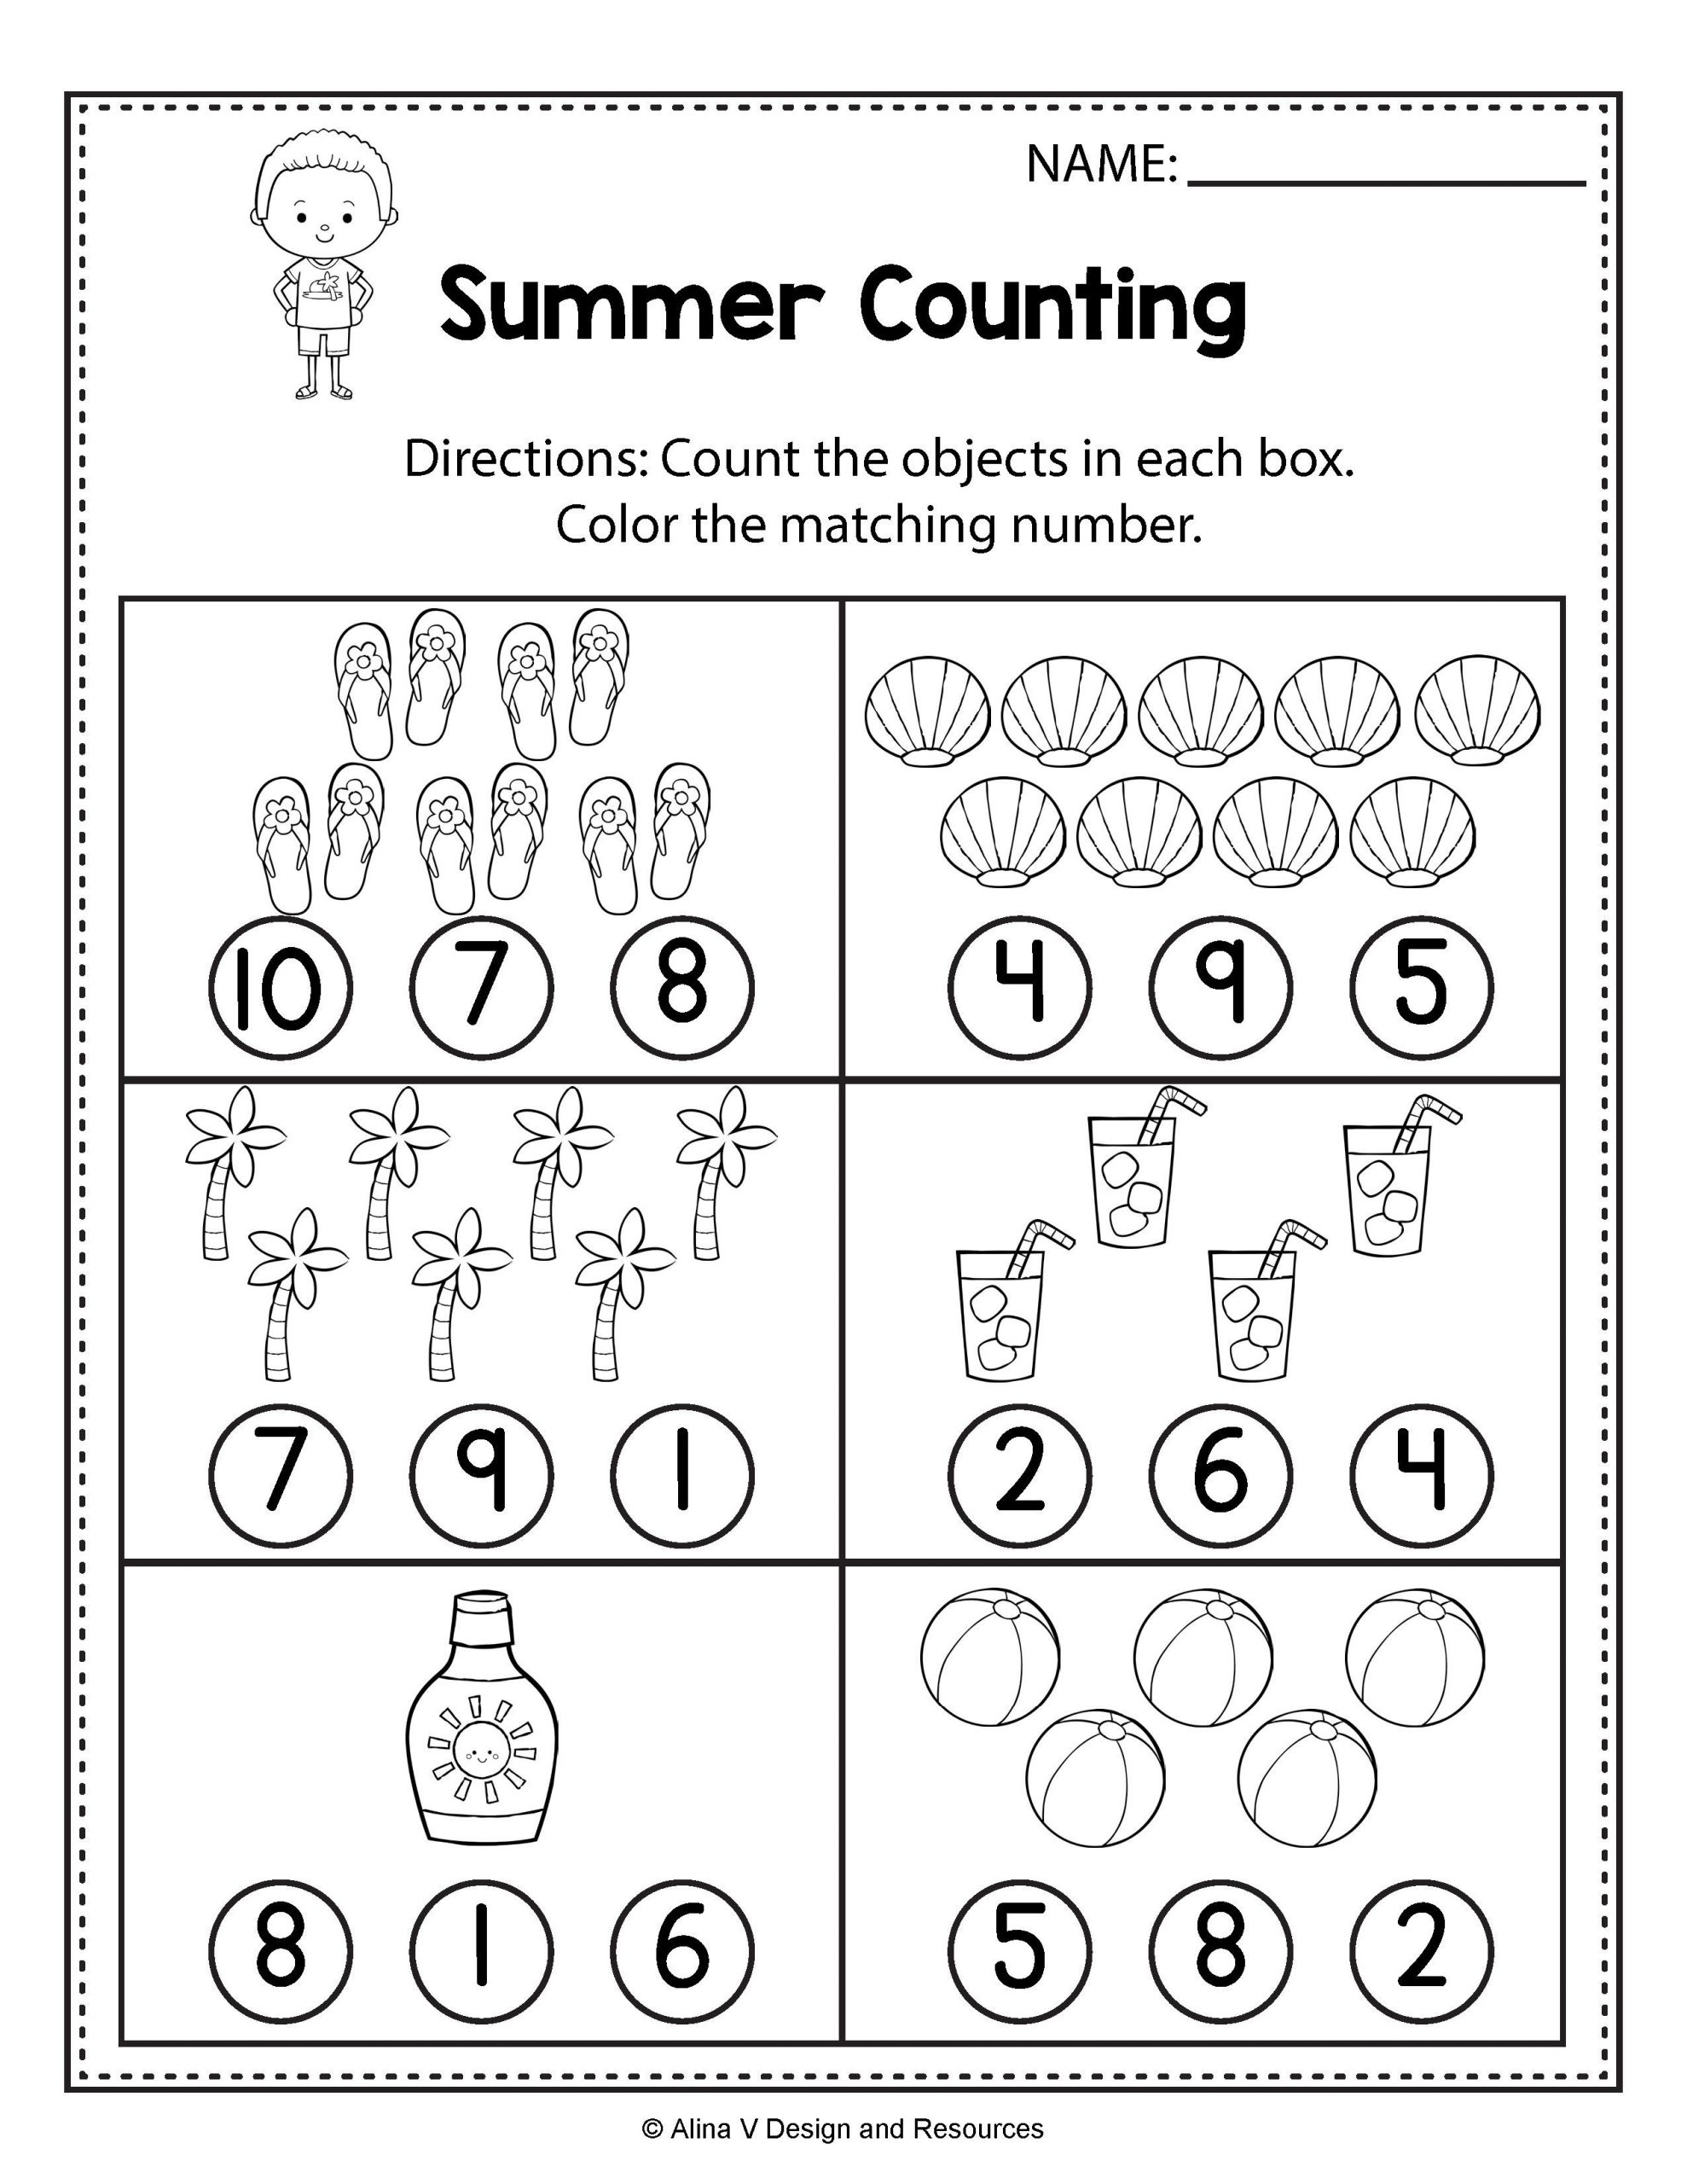 Categorizing Worksheets for 1st Grade Counting Worksheets Summer Math Worksheets and Activities